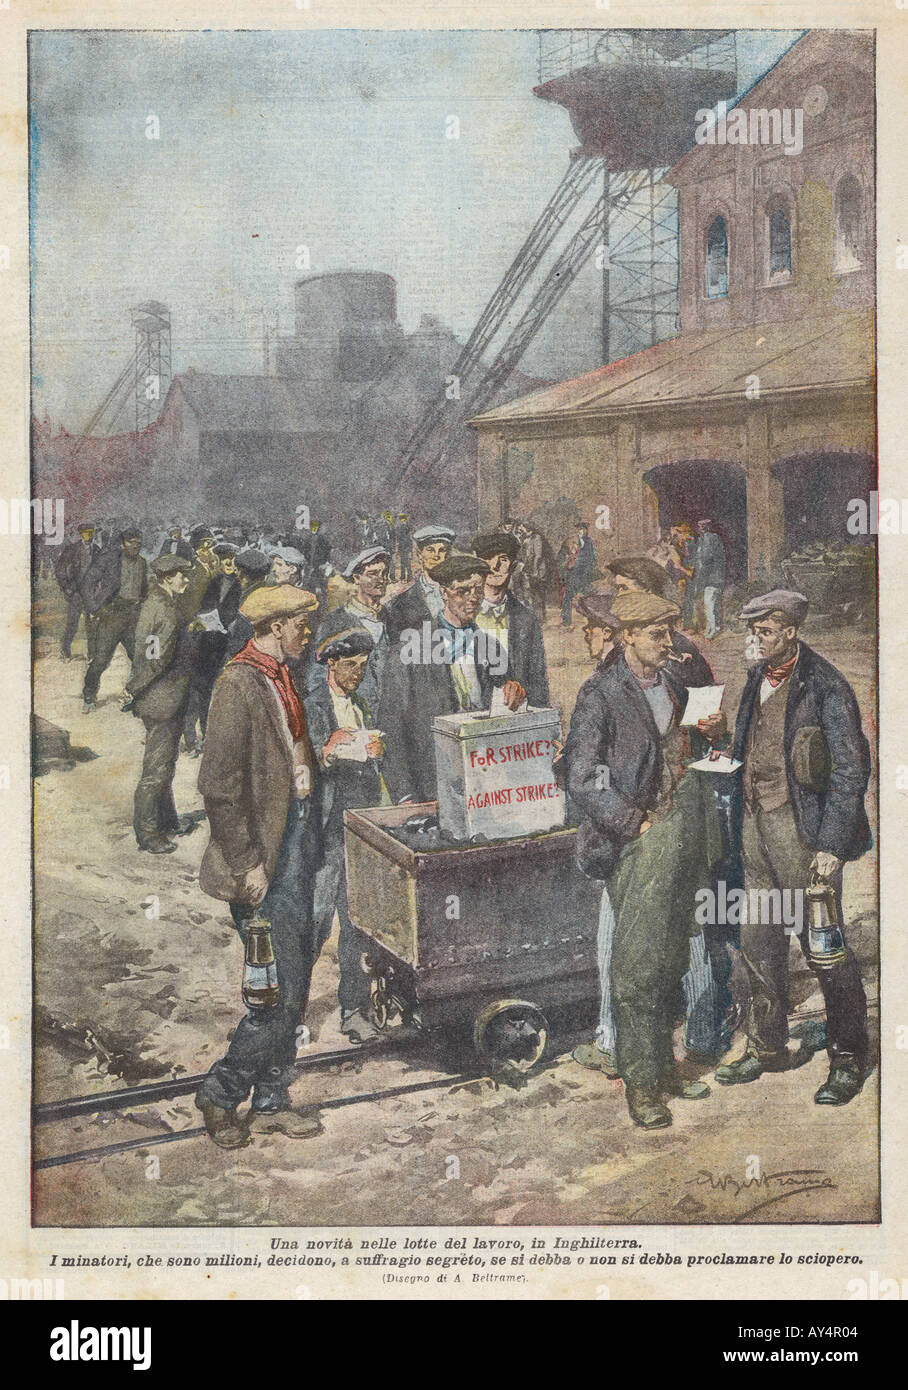 Miners Strike  1920 - Stock Image